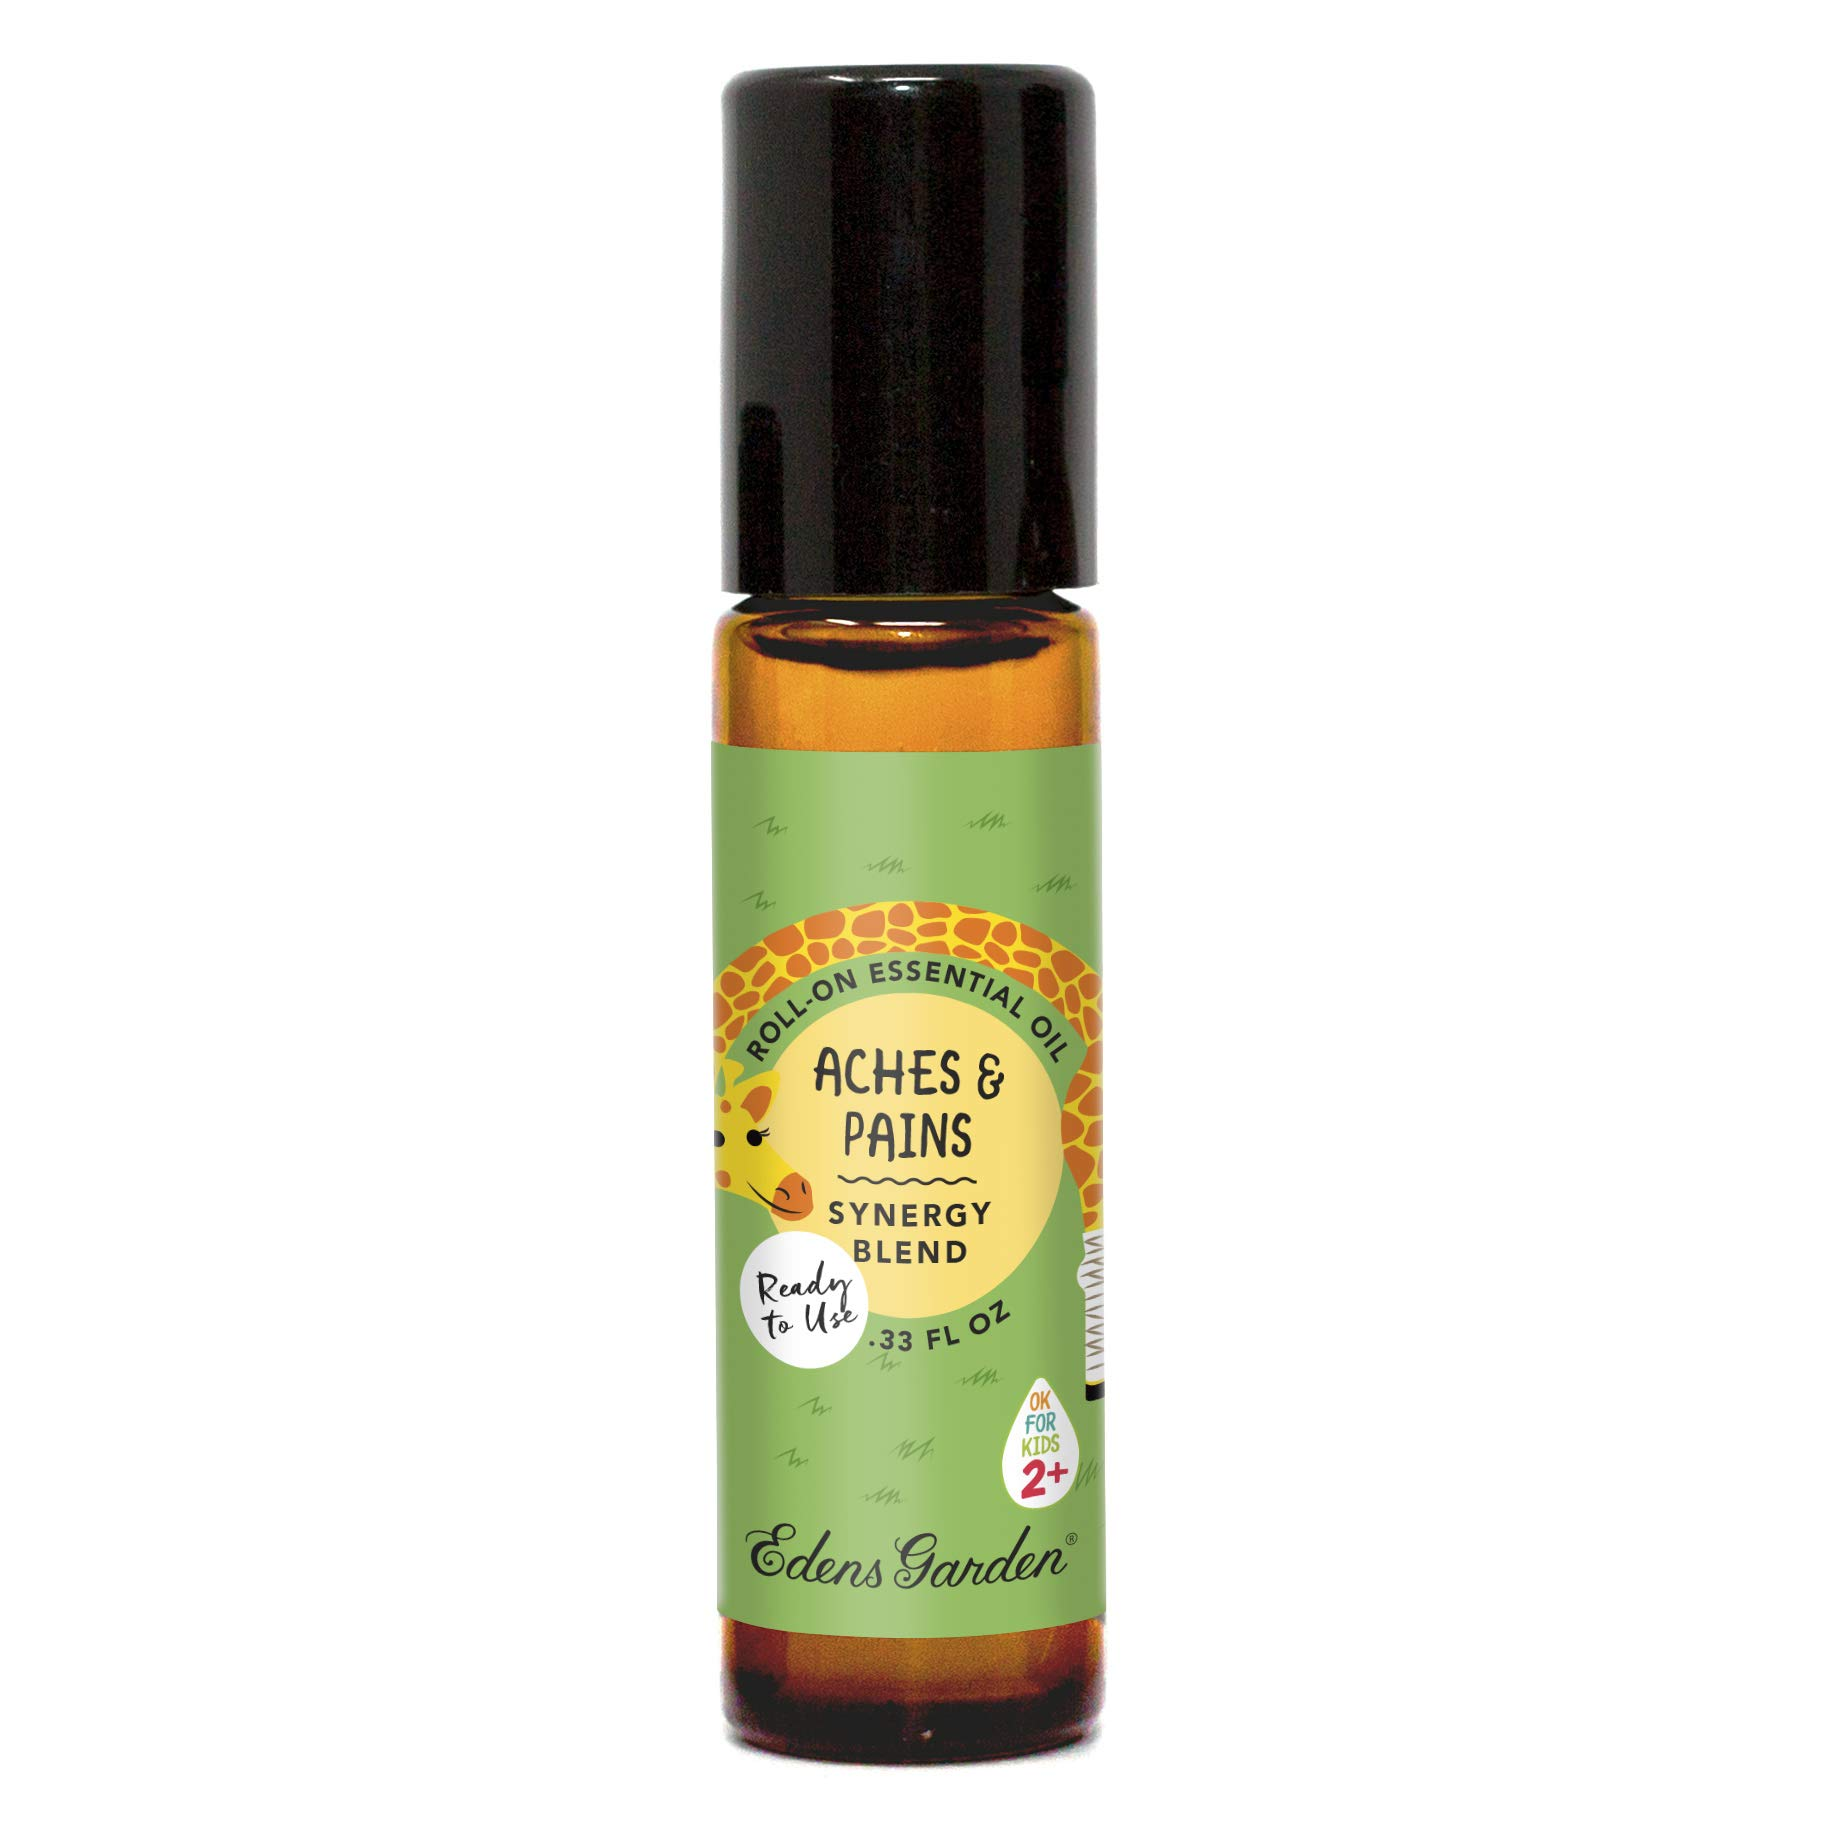 Edens Garden Aches & Pains''OK For Kids'' Essential Oil Synergy Blend, 100% Pure Therapeutic Grade (Child Safe 2+, Pre-Diluted & Ready To Use- Massage & Pain), 10 ml Roll-On